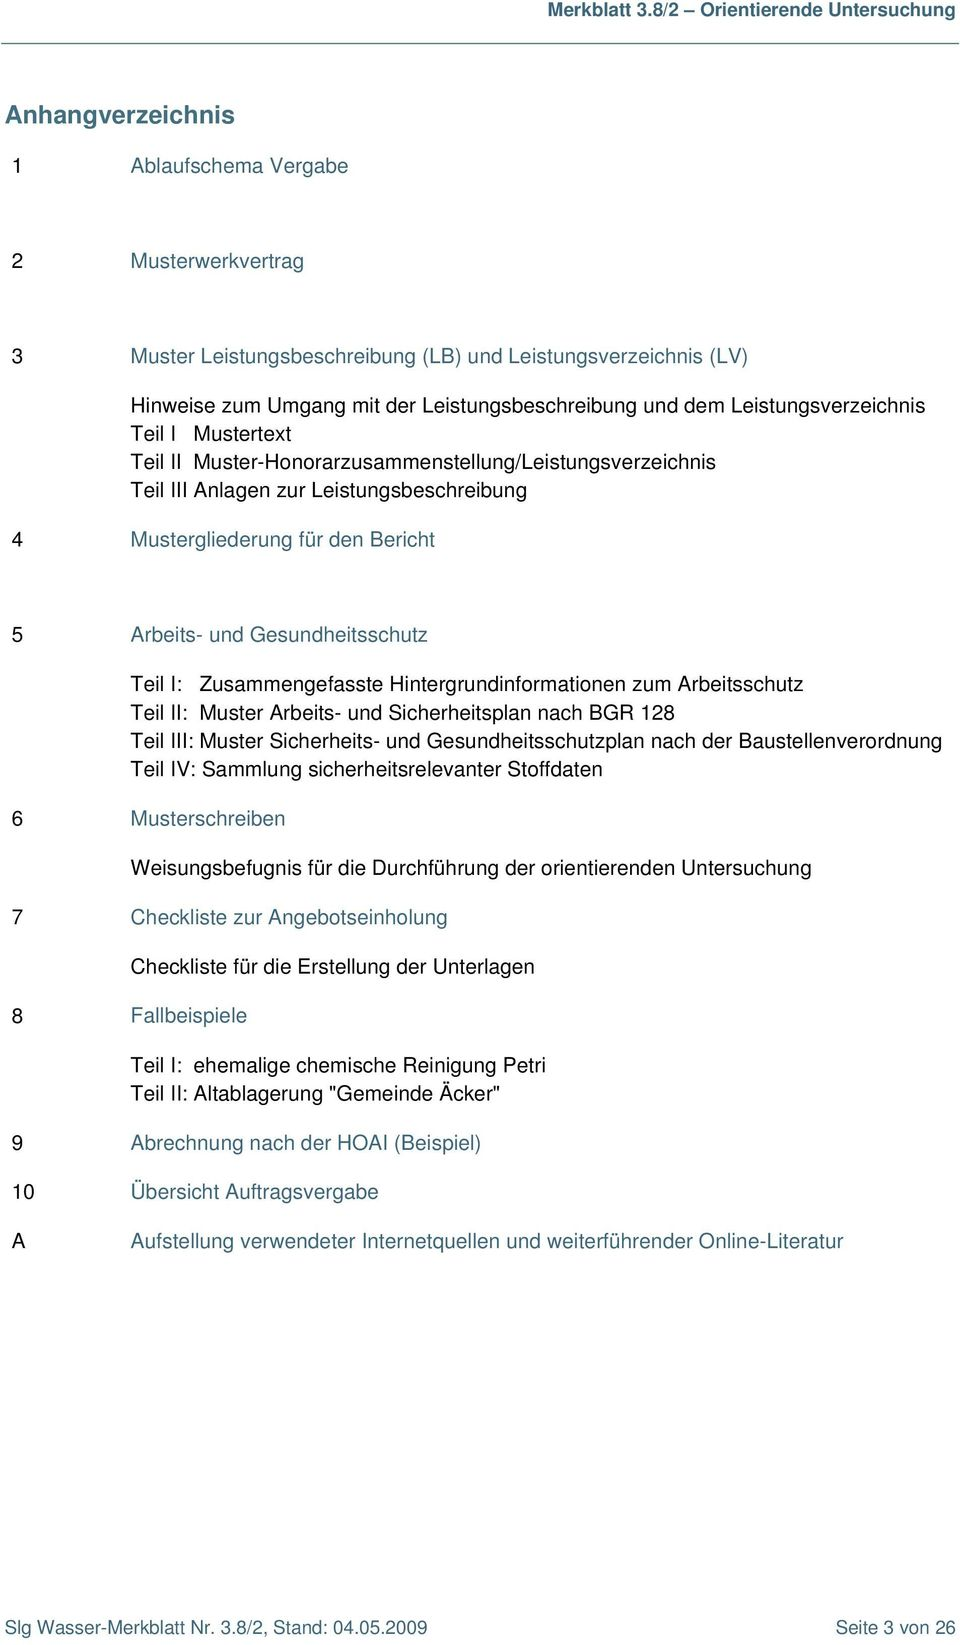 Charmant Projekt Sicherheitsplan Vorlage Fotos - Entry Level Resume ...